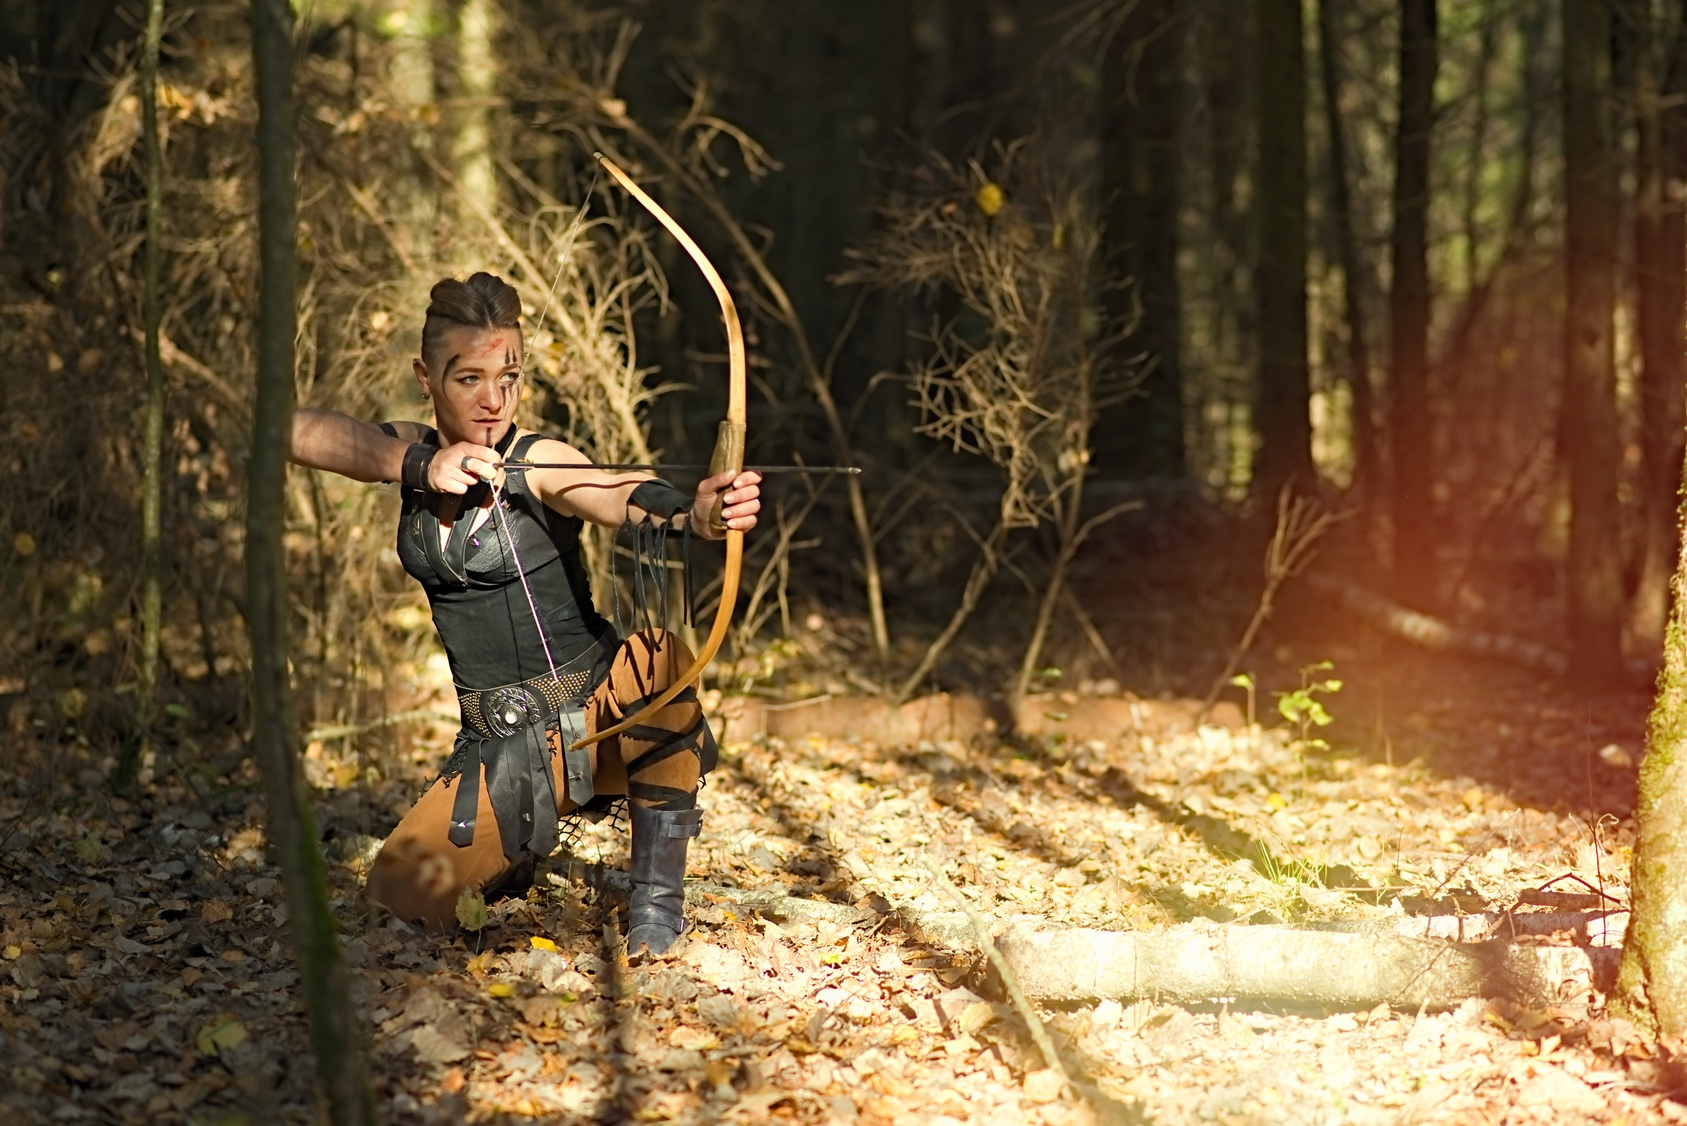 Archer cosplay posing in the woods with a wooden bow and arrow